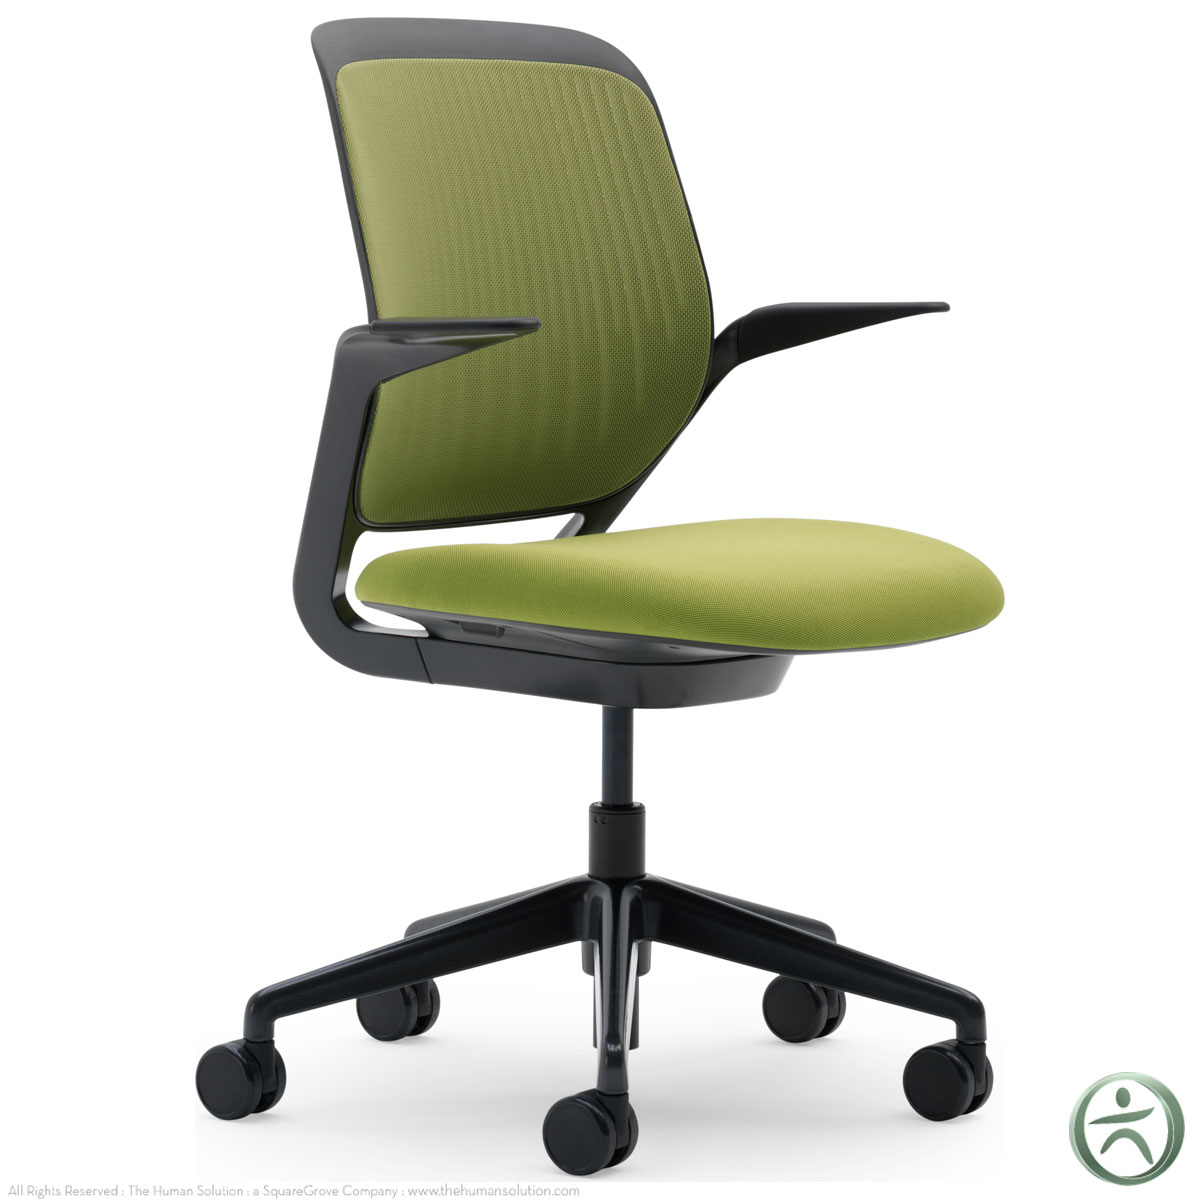 Steelcase Chairs Steelcase Cobi Chair